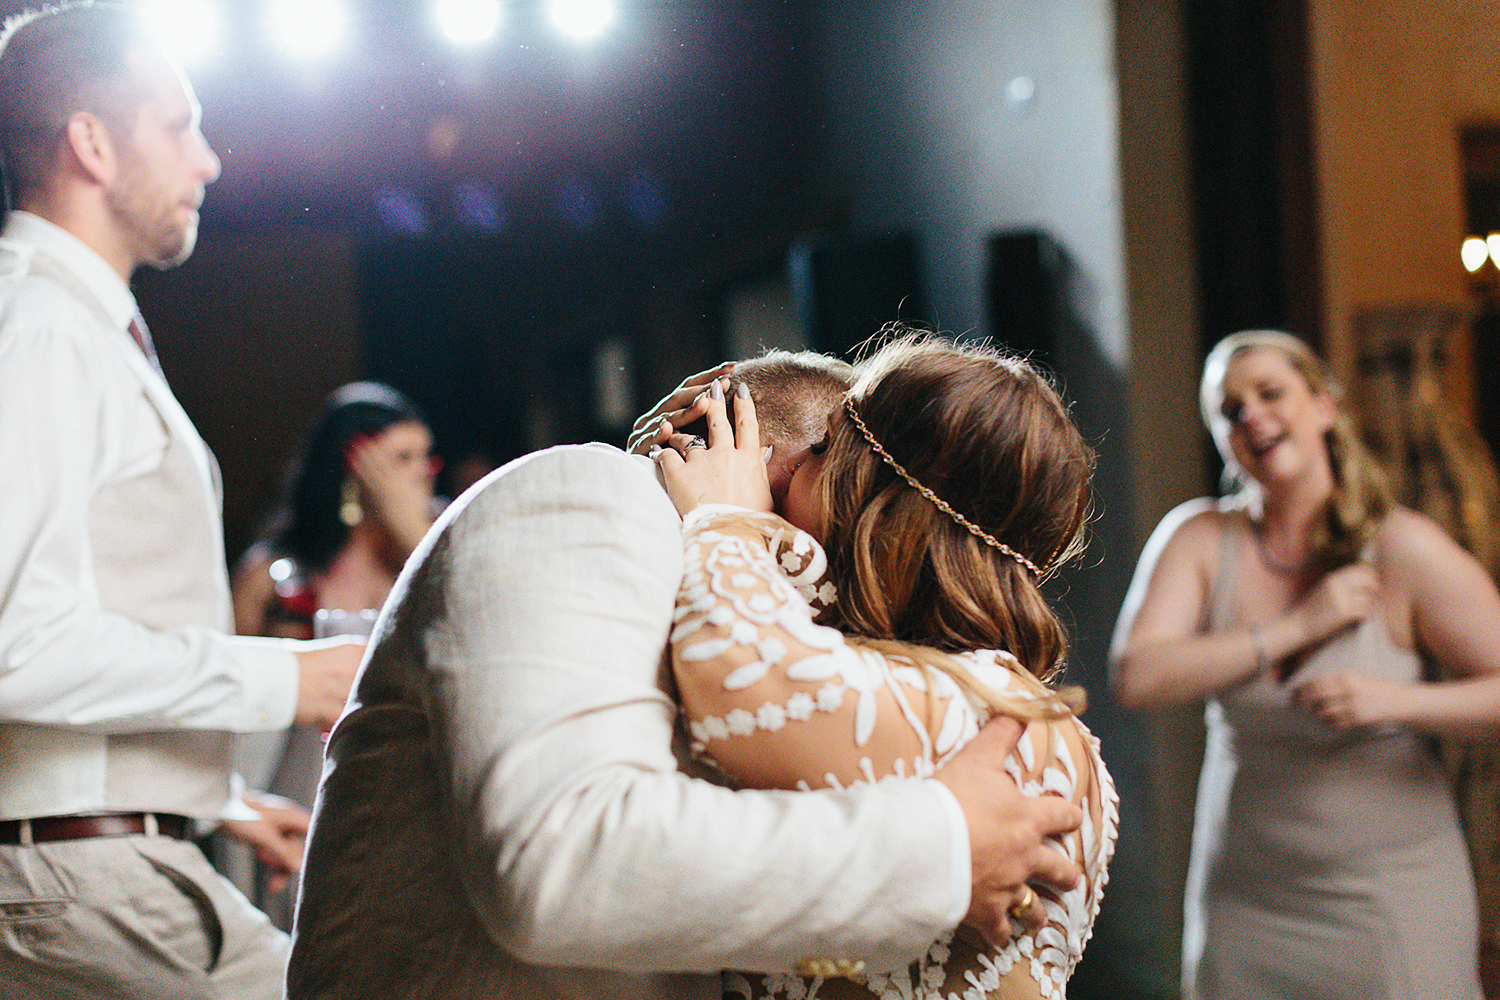 cabo-san-lucas-junebug-weddings-green-wedding-shoes-toronto-wedding-photographer-3b-photography-ventanas-private-club-mexico-reception-night-bride-and-groom-emotional-in-love-real-moments.jpg